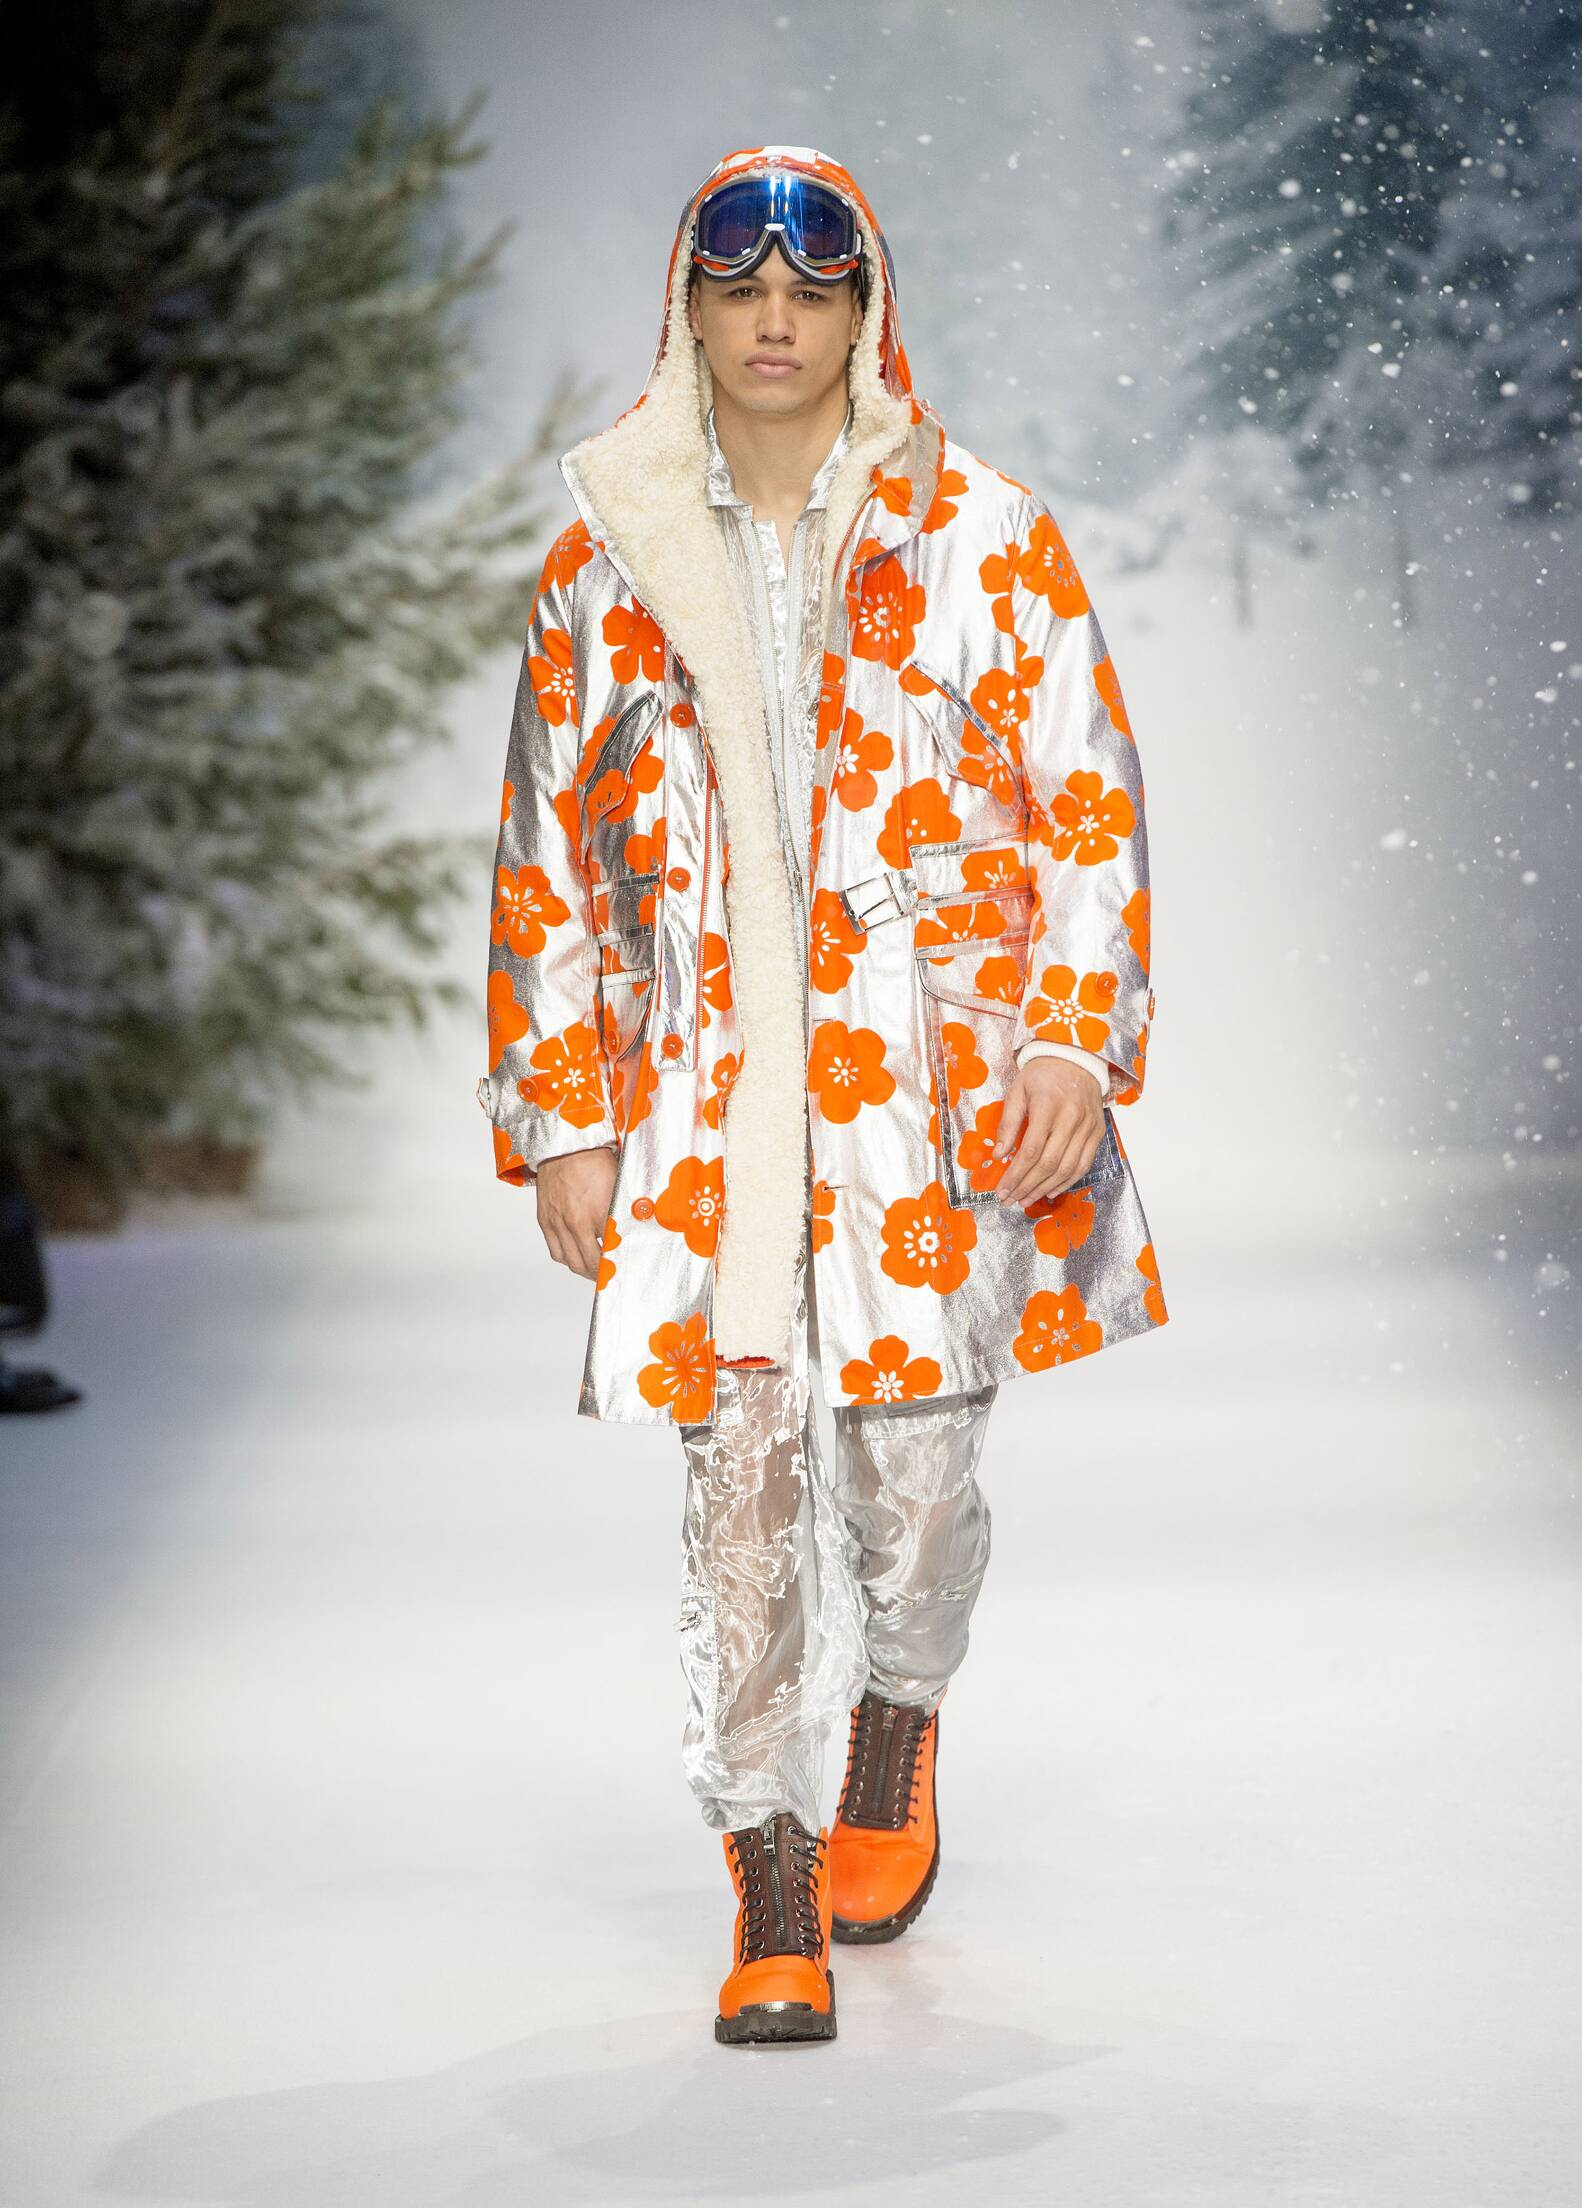 Catwalk Moschino Man Fashion Show Winter 2015 2016